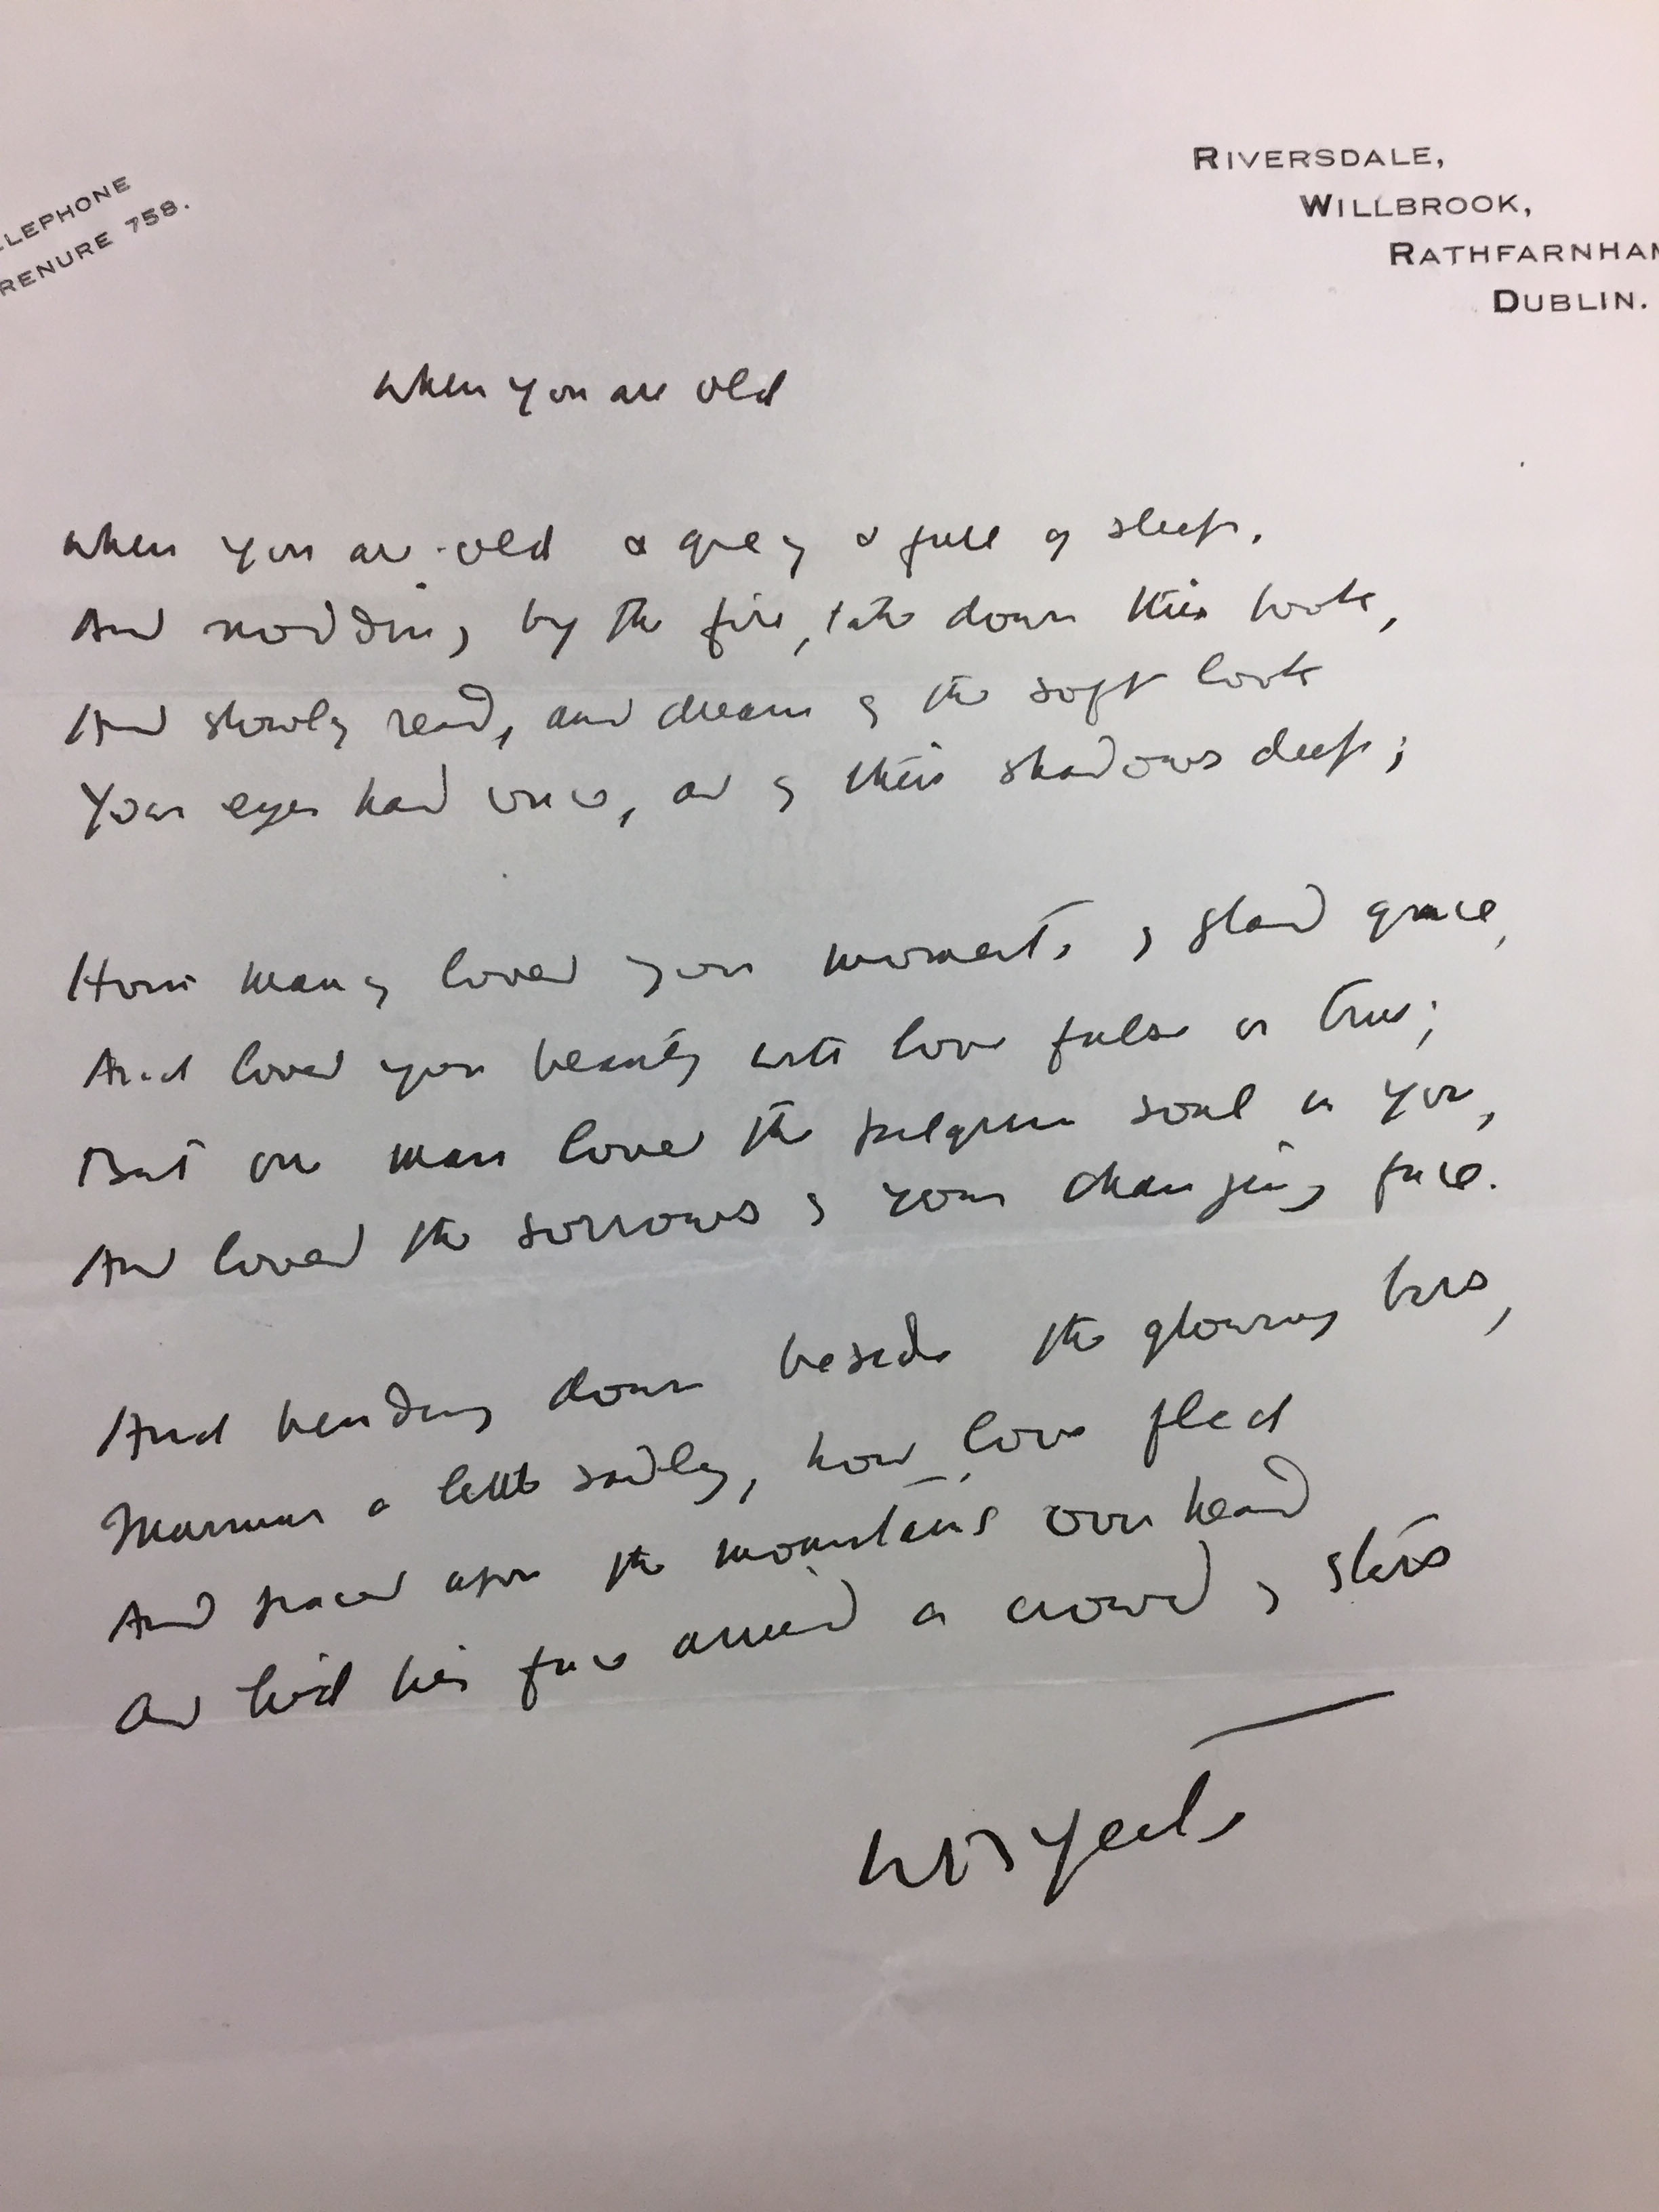 "A manuscript of the poem ""When You Are Old,"" written and signed by William Butler Yeats sometime during the 1930s, per the printed address. (MSS 4243)"